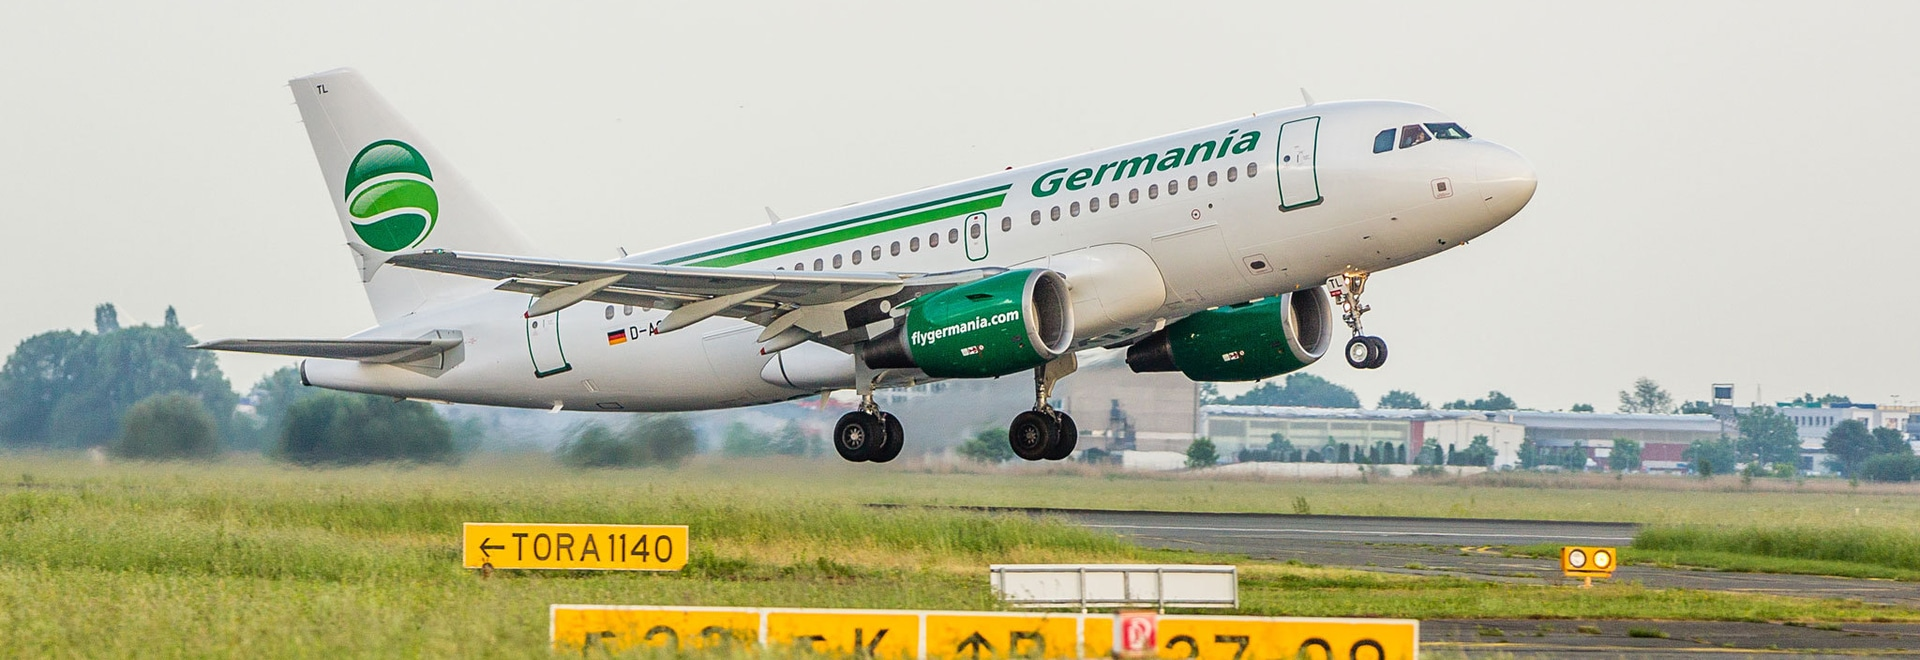 """Berlin-based Germania has stopped all flights and applied for insolvency after failing to cover a """"short-term liquidity problems."""" (Photo: Germania)"""